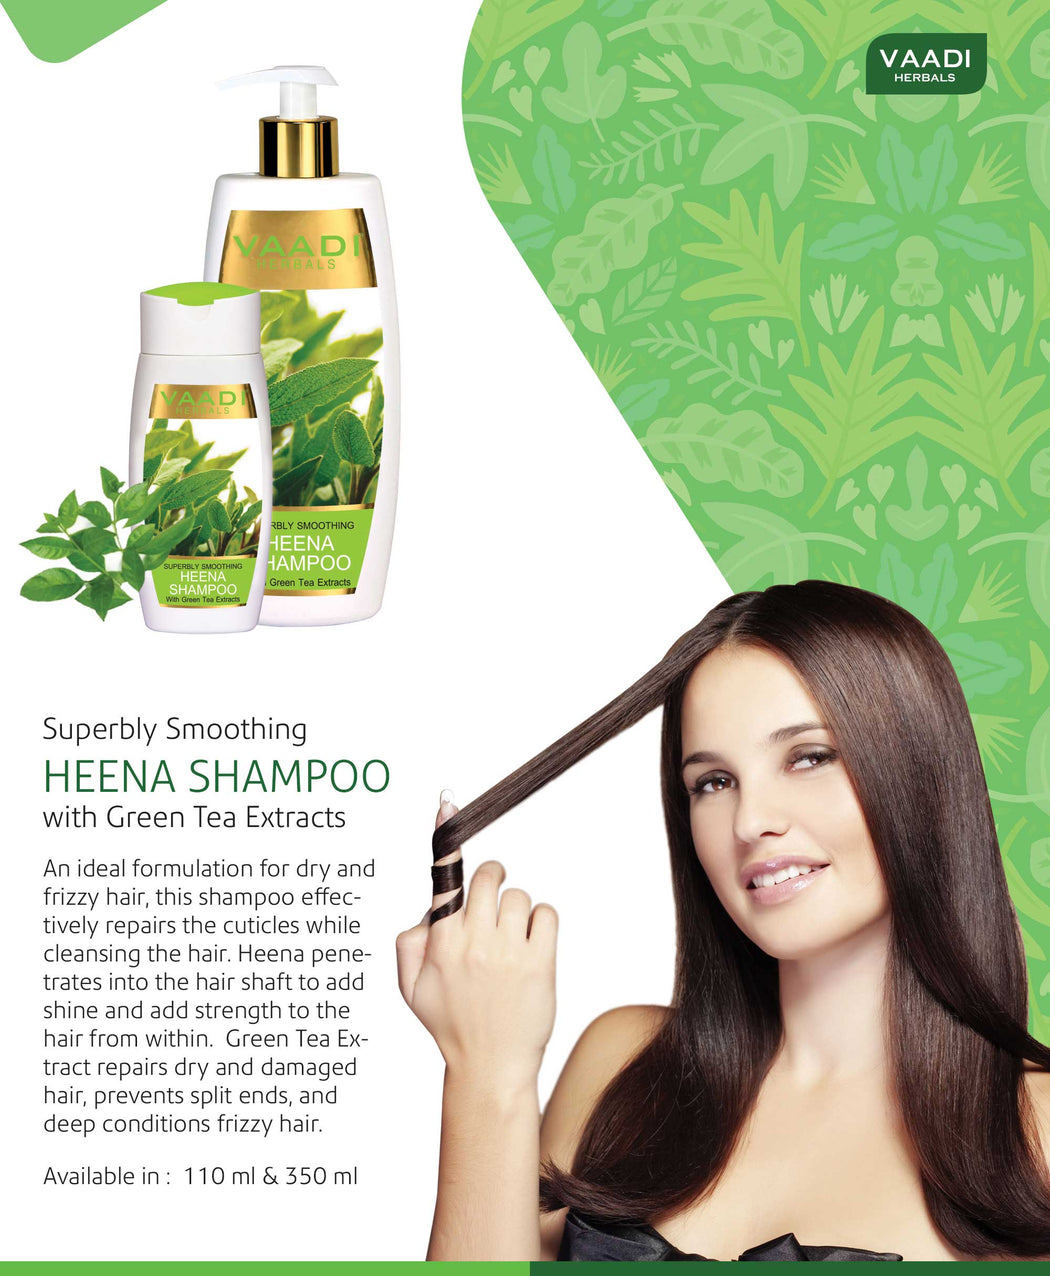 Superbly Smoothing Organic Heena Shampoo with Green Tea Extract - Controls Dry Frizzy Hair - Strengthens Hair (110 ml/4 fl oz)